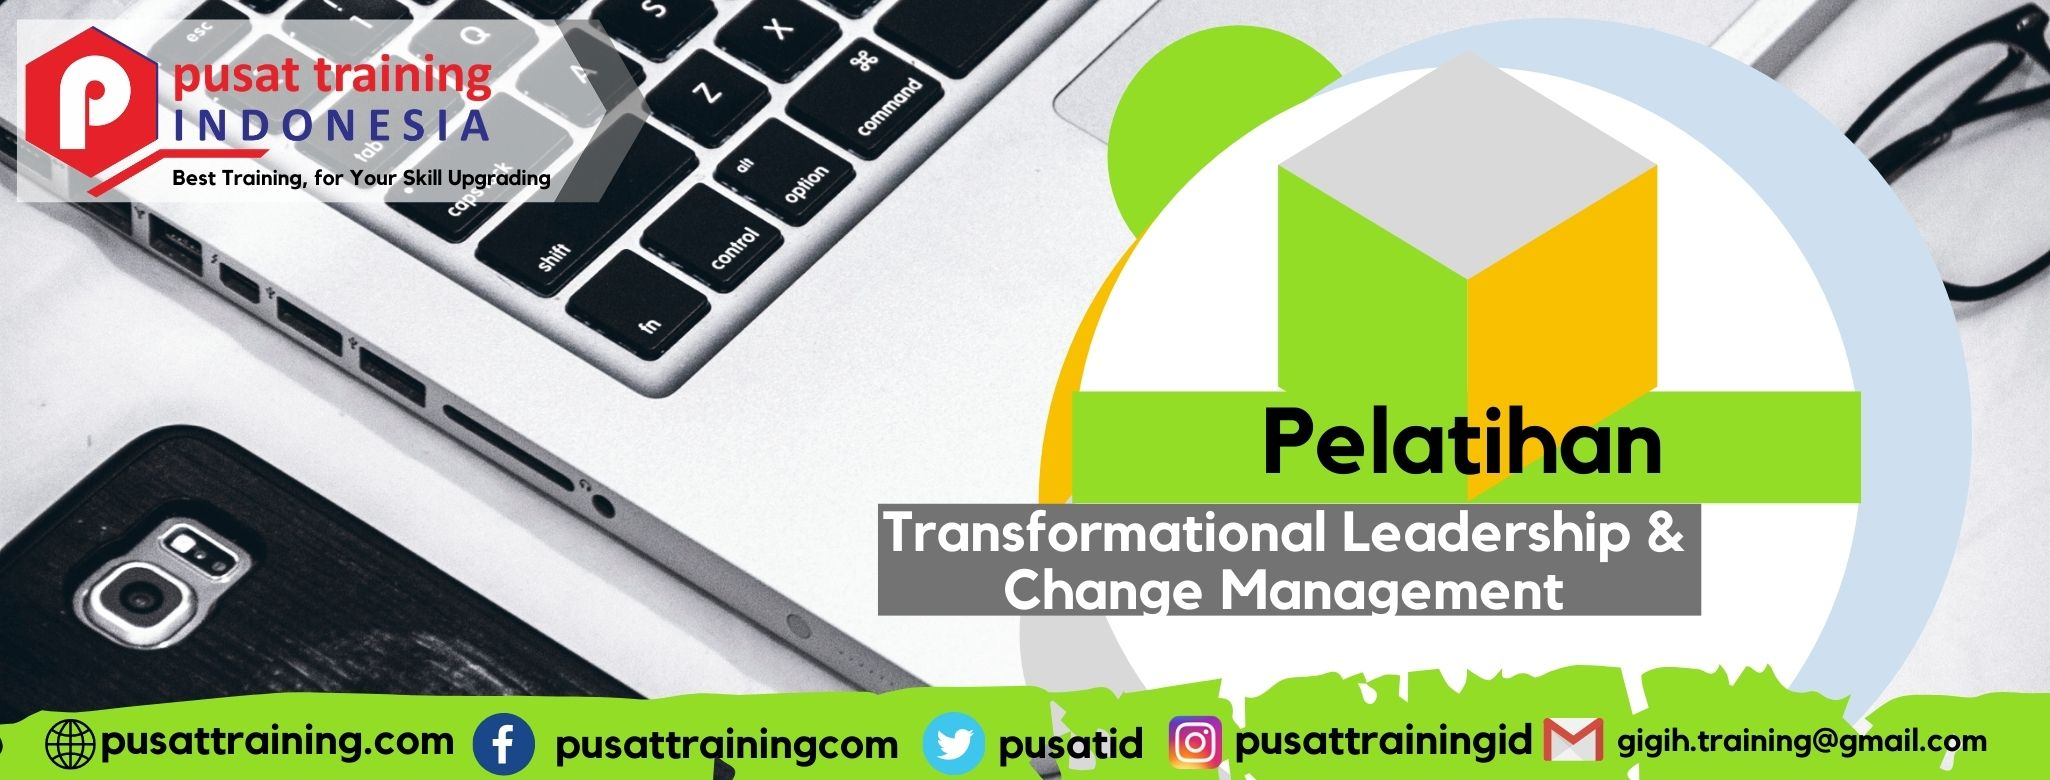 Pelatihan Transformational Leadership & Change Management